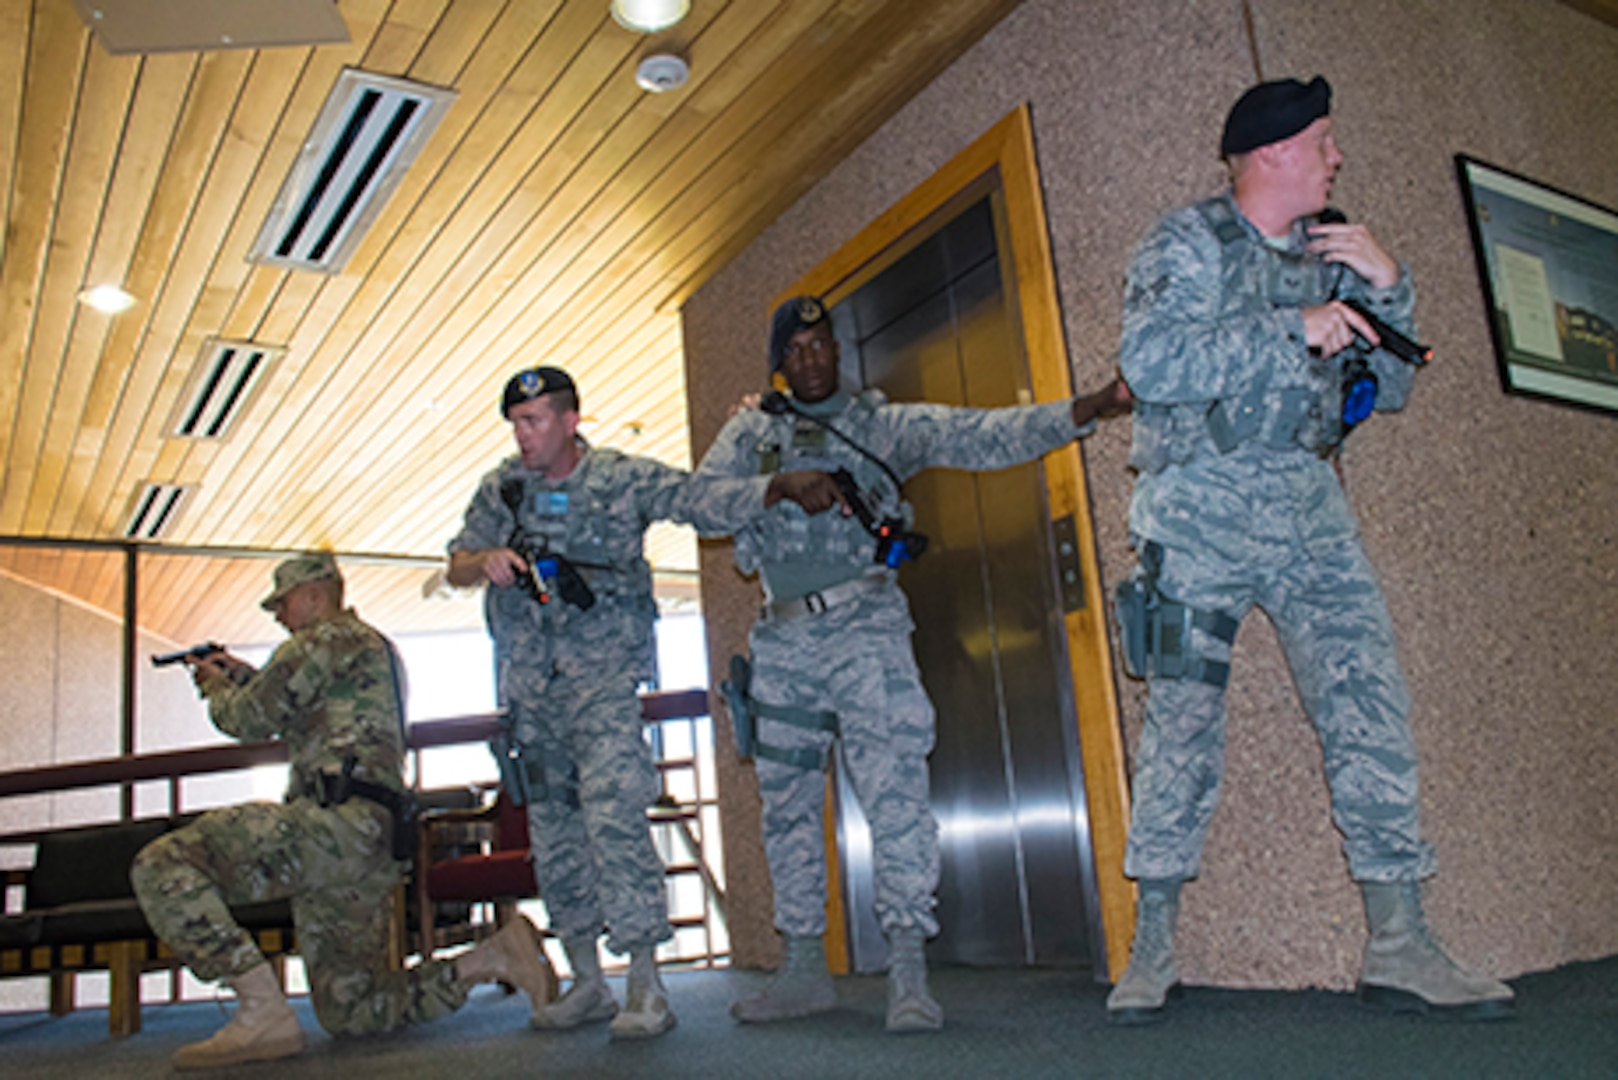 Members of the Colorado National Guard, South Metro Fire Rescue and the Arapahoe County Sheriffs Office perform active threat training at Joint Force Headquarters, Centennial, Colo., August 25, 2017.  This training aids the CONG and partner organizations in preparation to response to potential real world incidents and educates Department of Military and Veterans Affairs employees on survival tactics. (U.S. Army National Guard photo by Staff Sgt. Joseph K. VonNida)